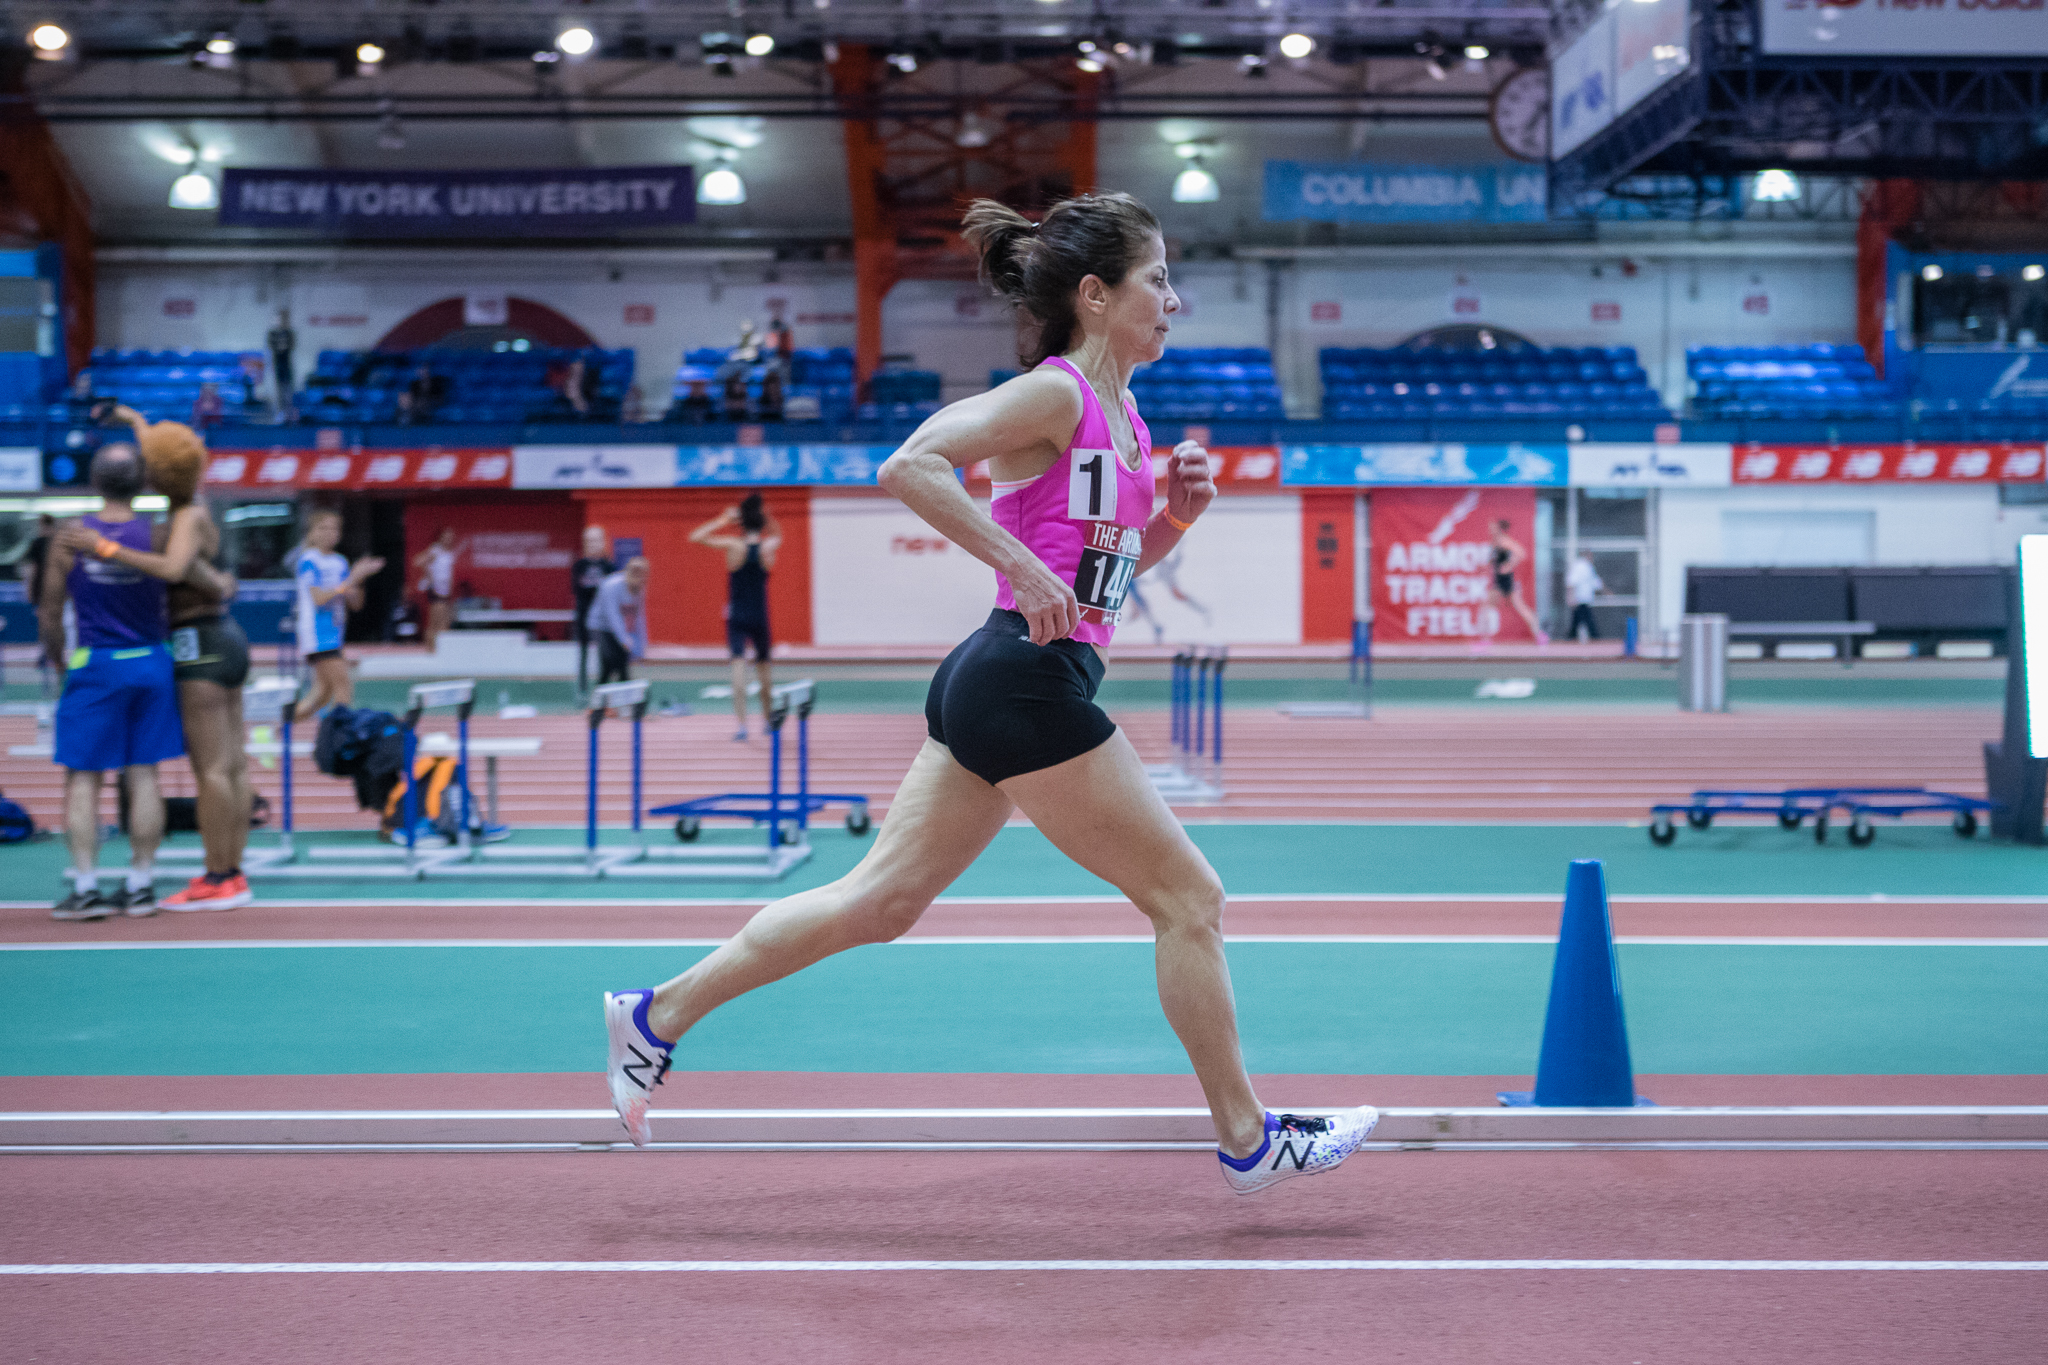 Kathyrn Martin set the W65 World Record in the mile, running it in 5:51.